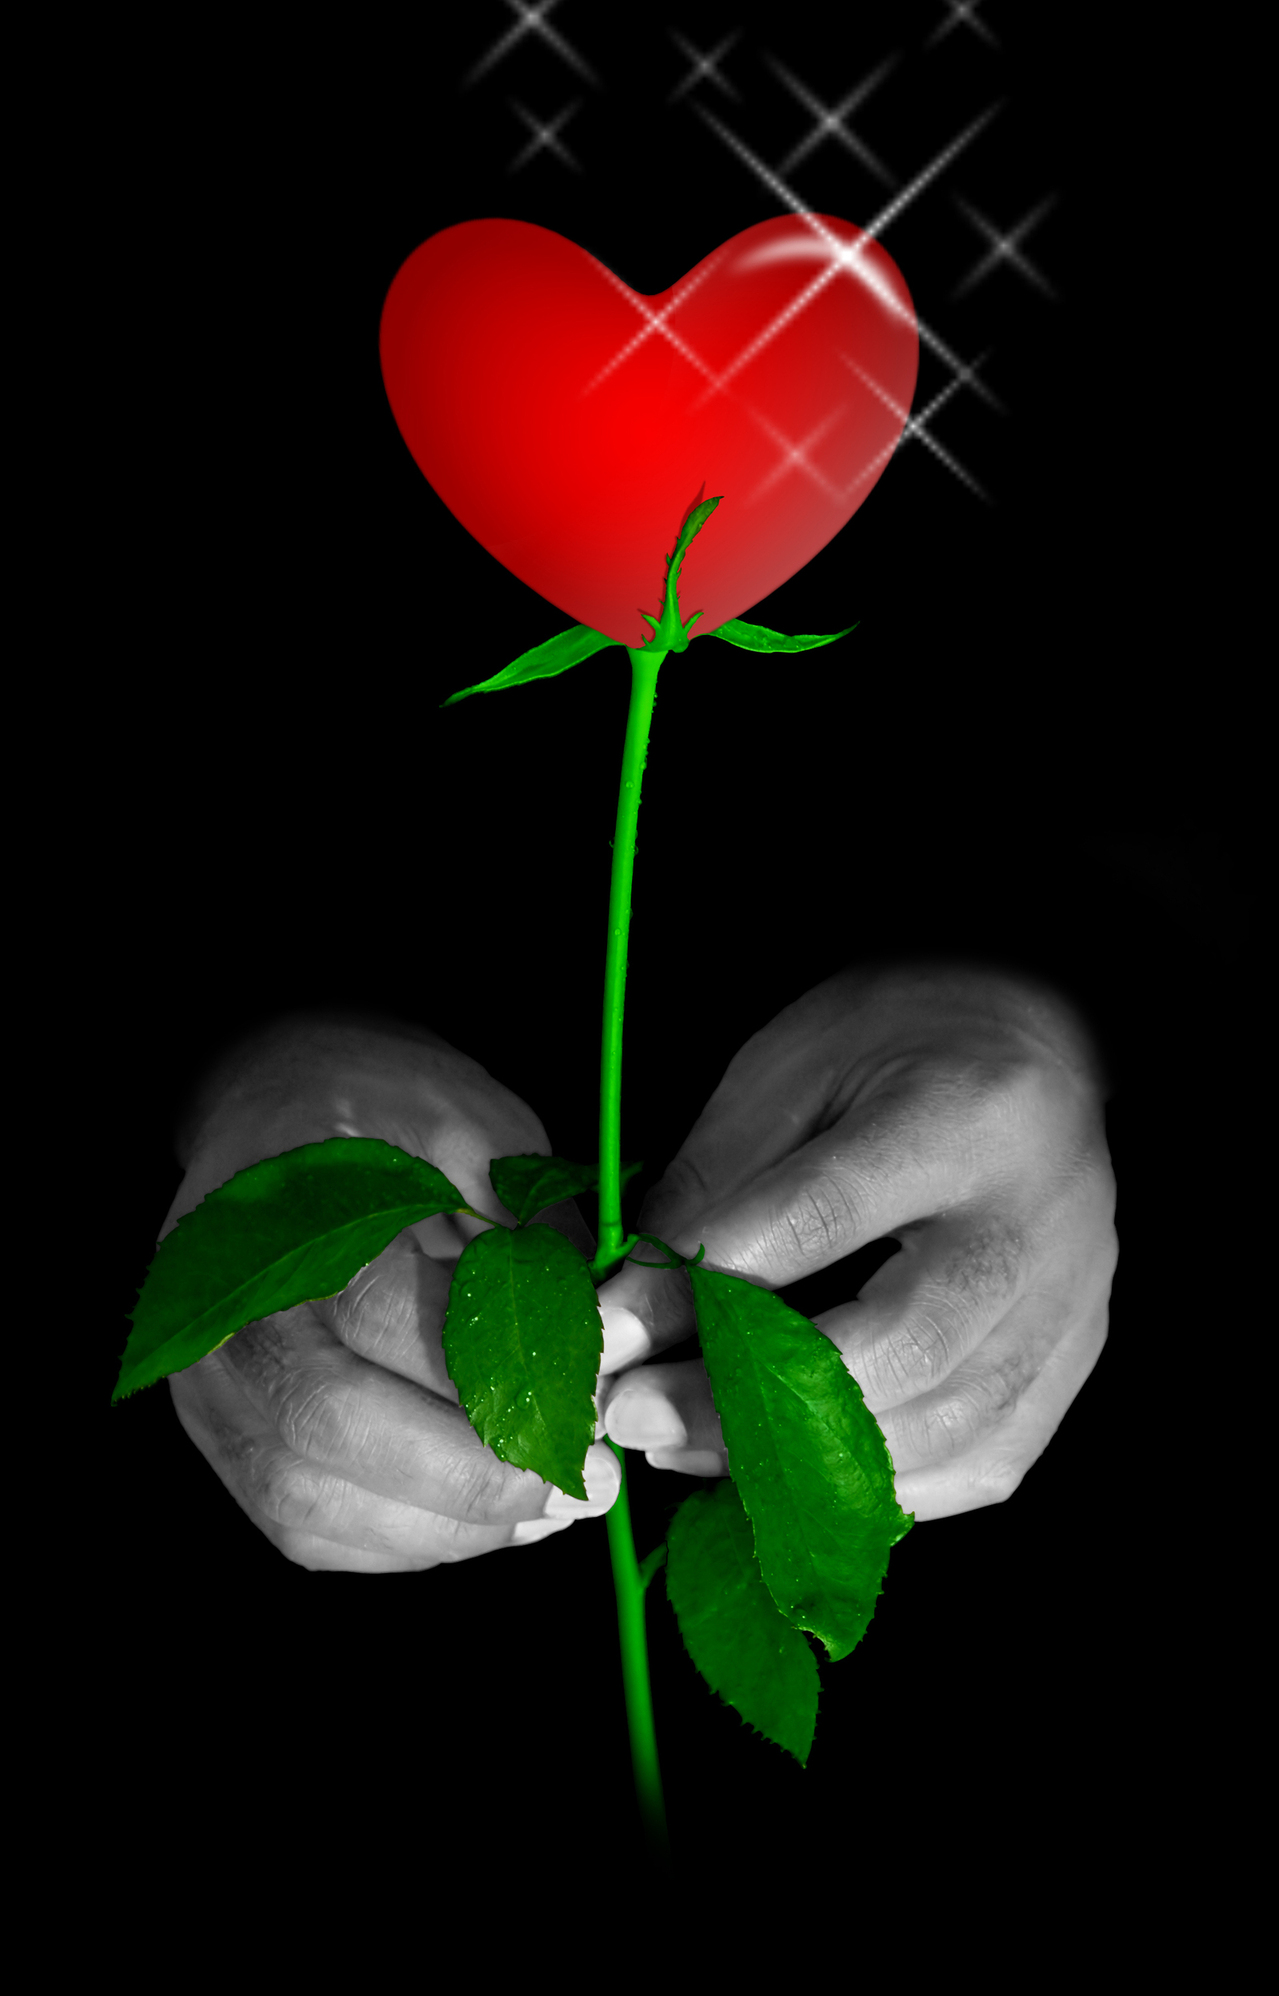 Sending memorable and meaningful Valentine's Day flowers